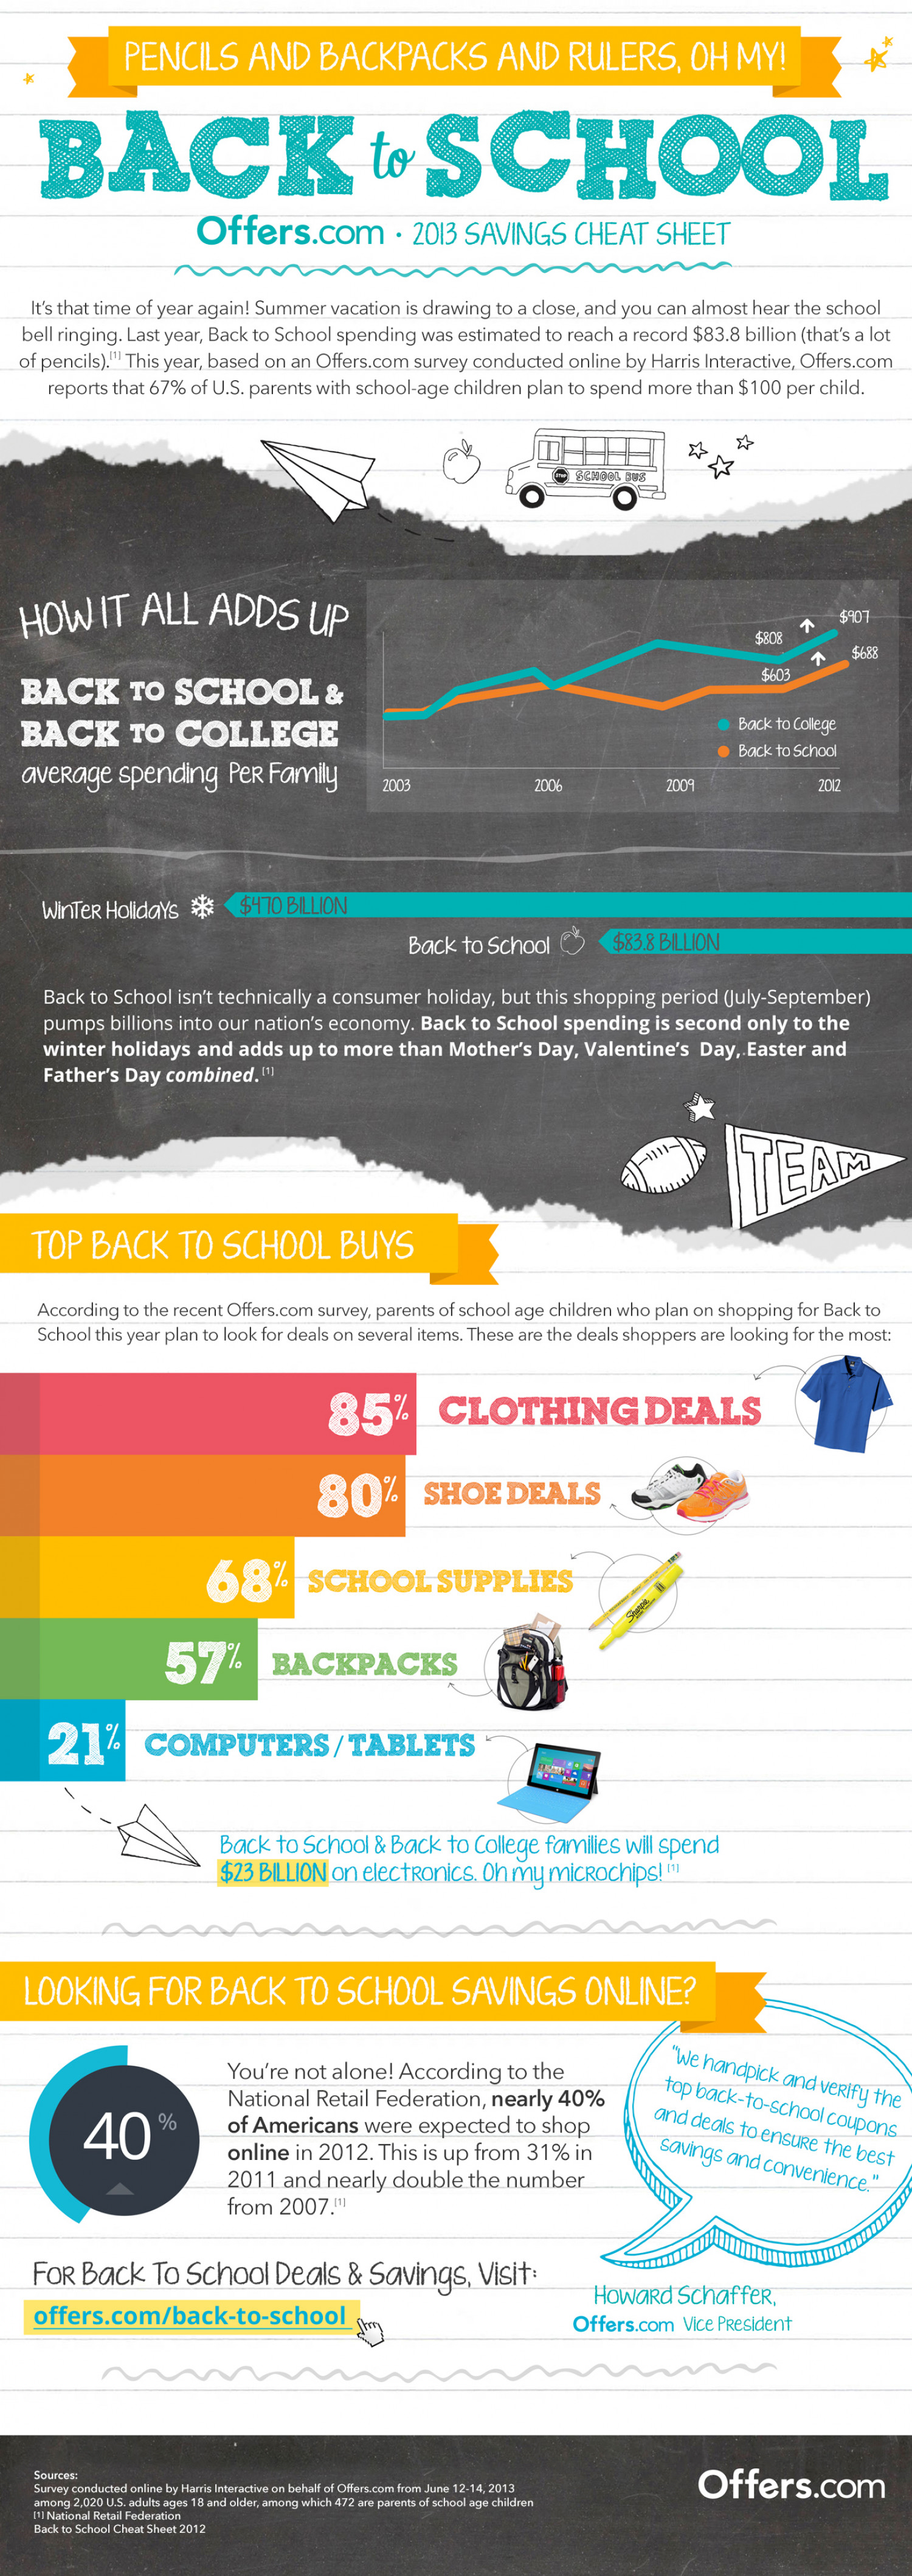 Back-to-School Shopping Trends Infographic